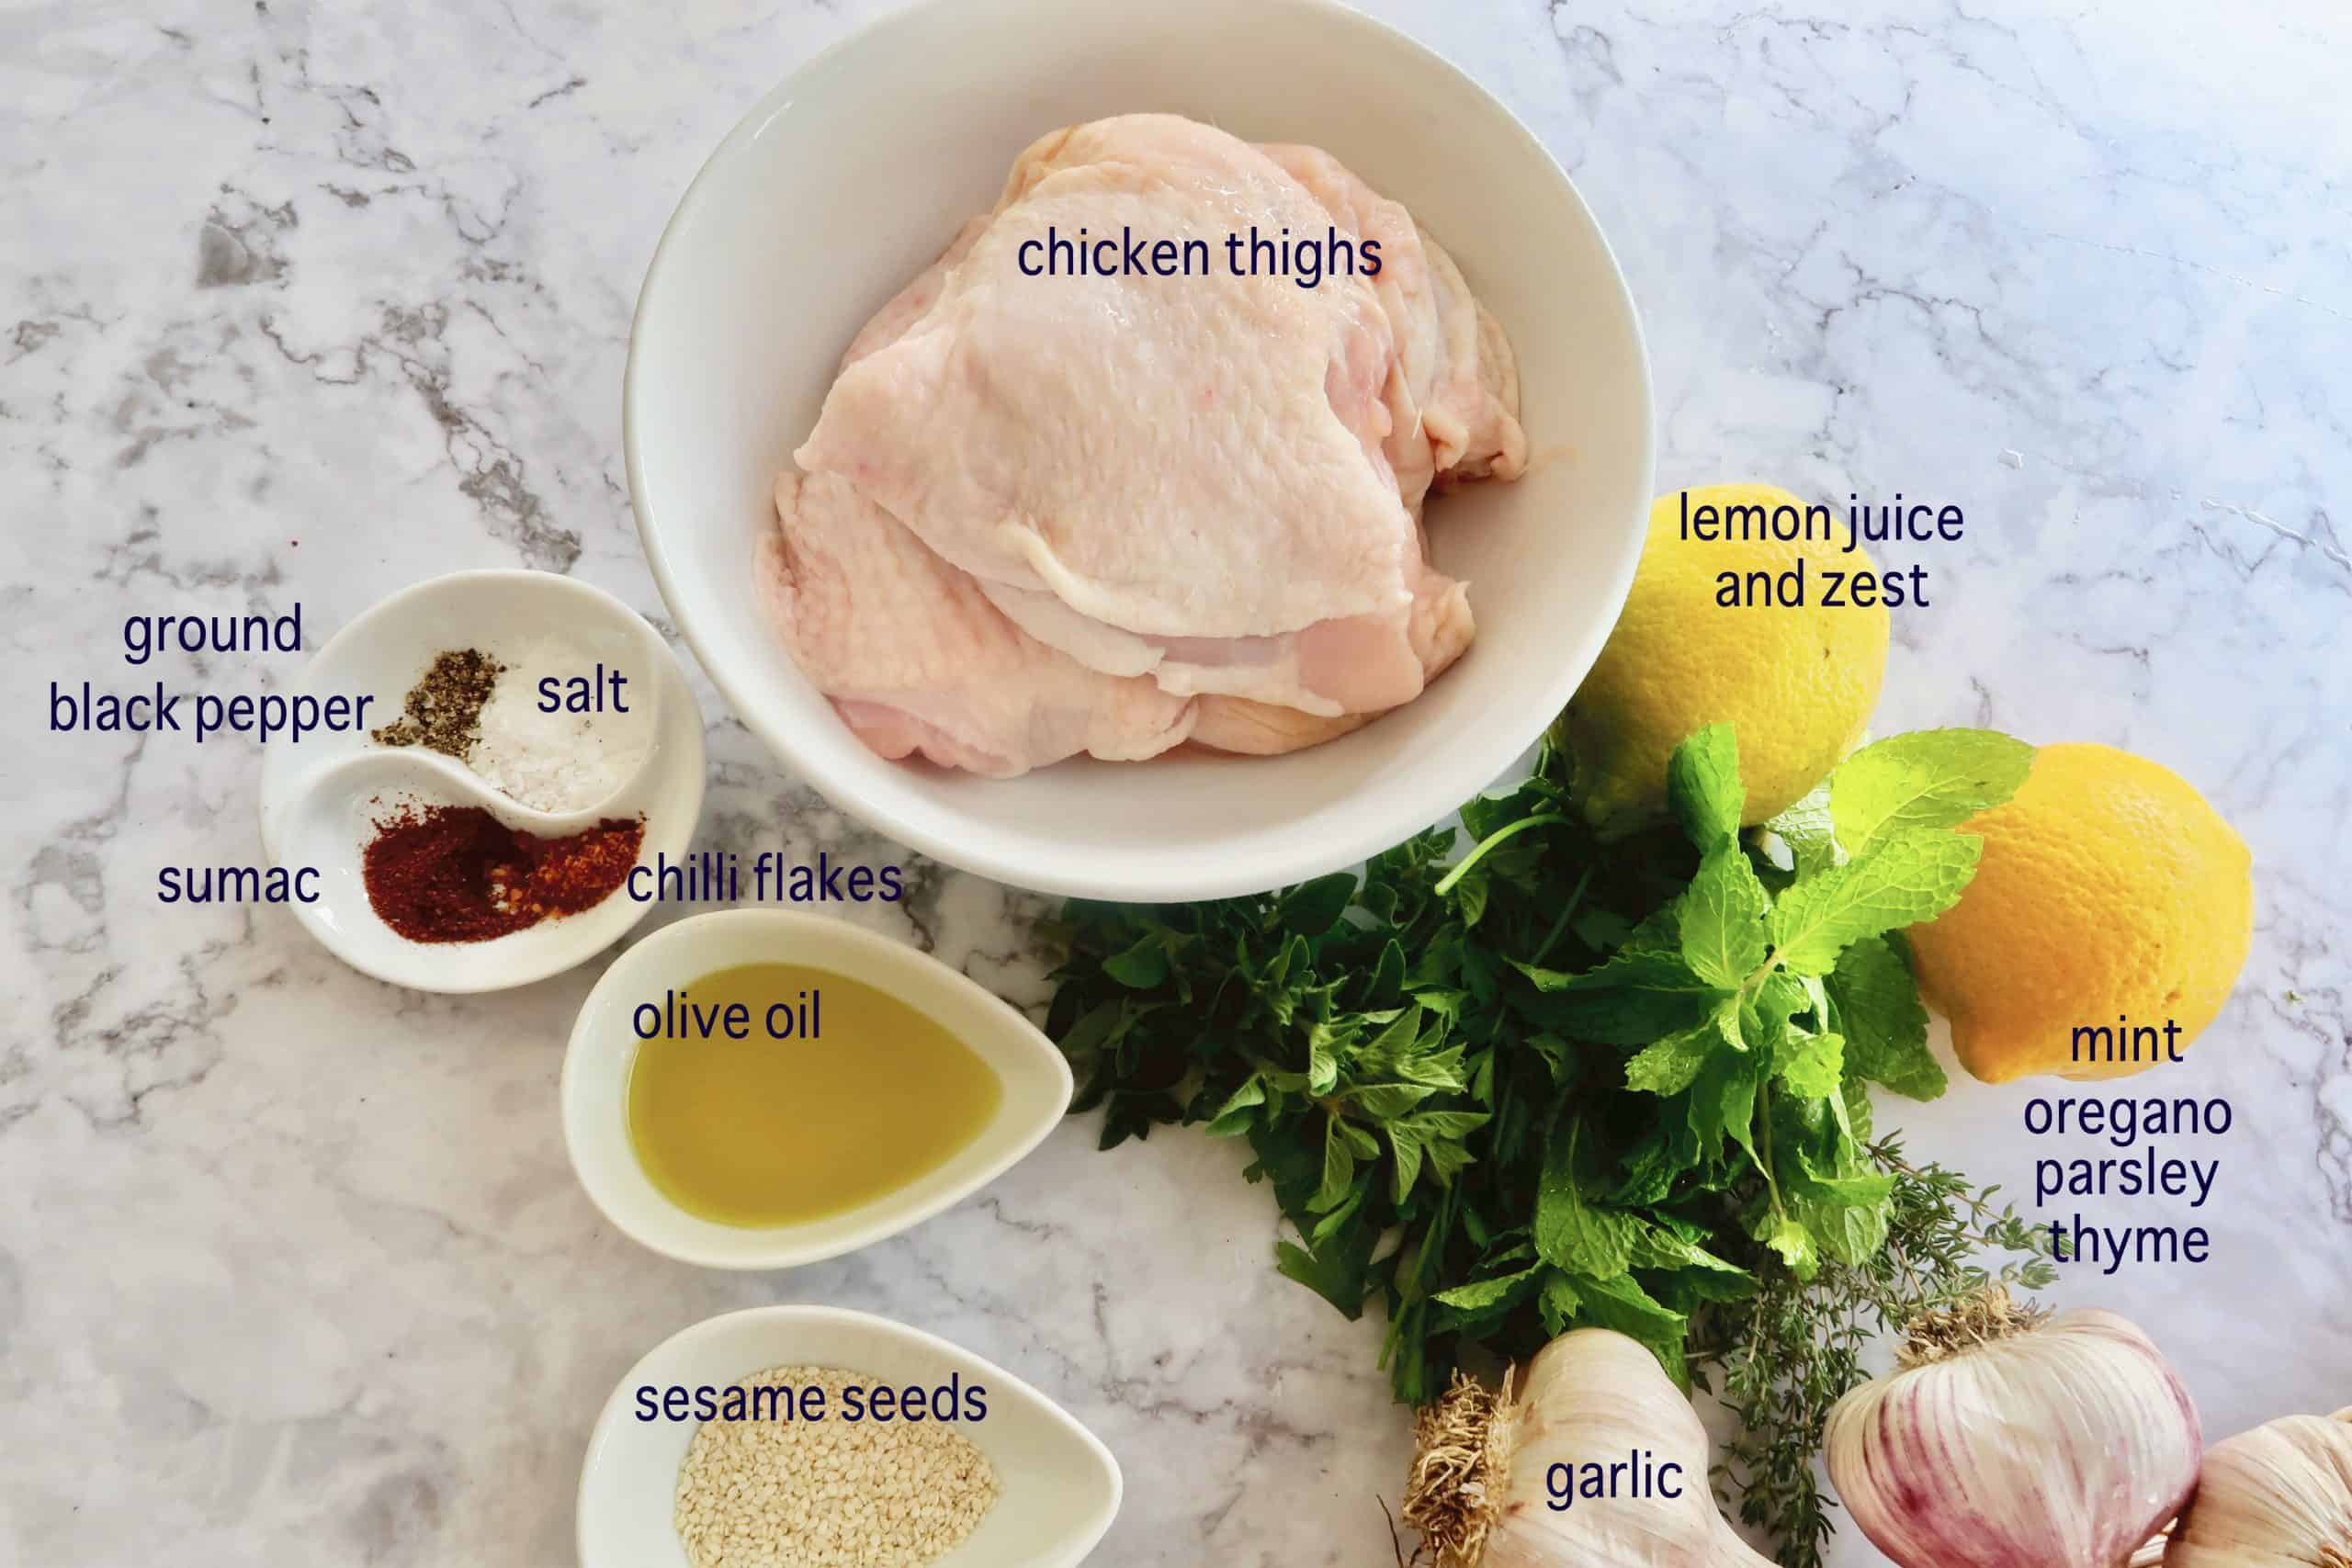 a marble table layed with the ingredients to makeMiddle Eastern Herb and Garlic Chicken Thighs